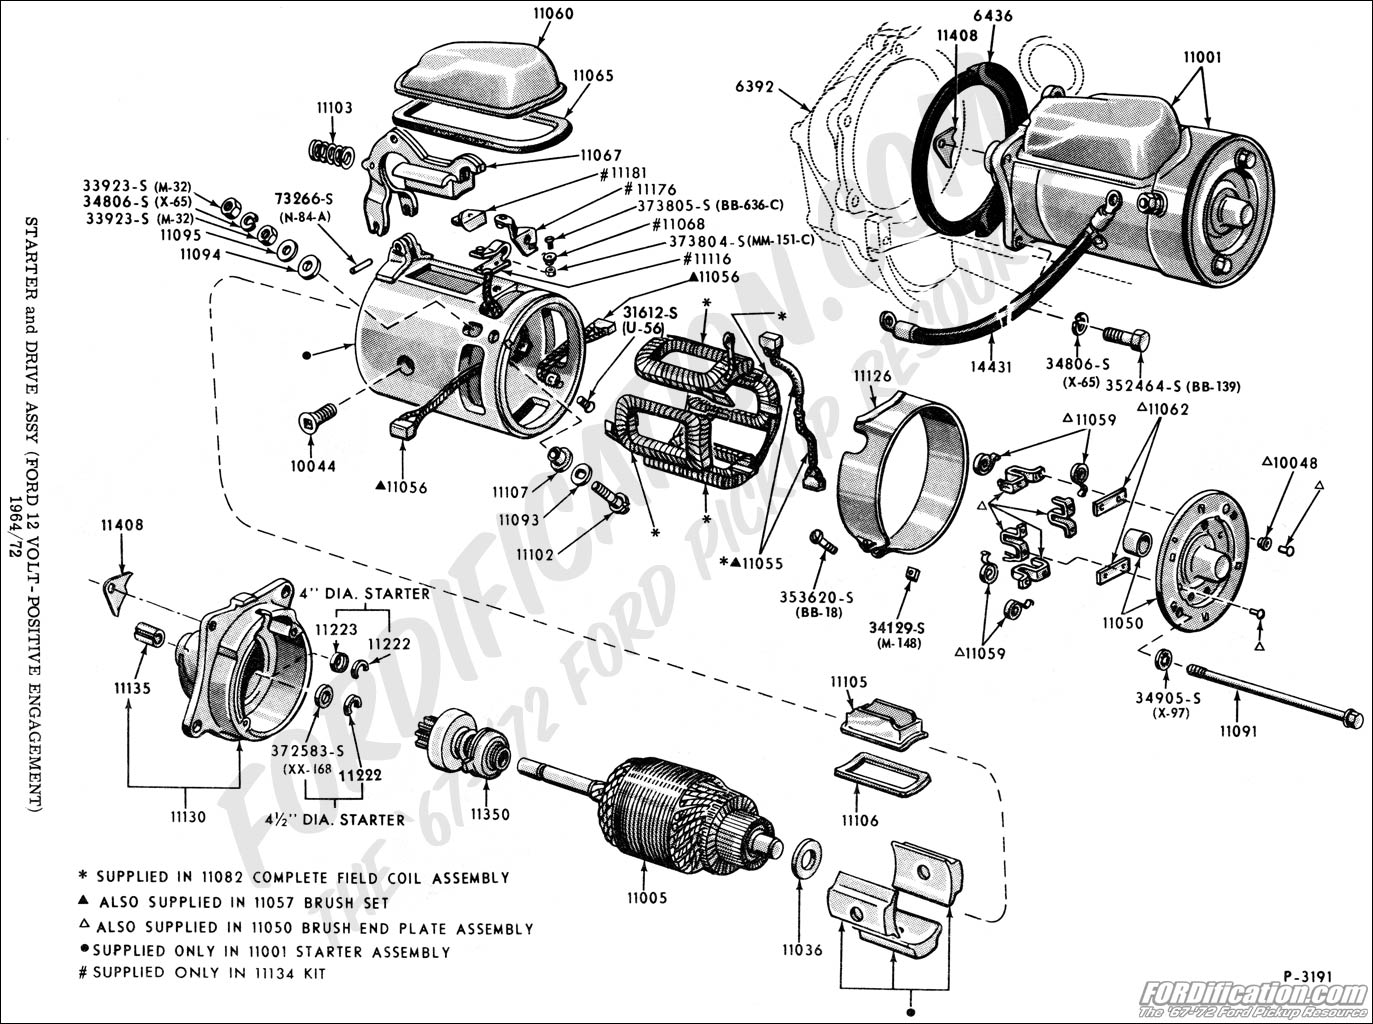 F150 together with AP7l 15573 moreover 1984 Ford F250 Diesel Wiring Diagram further Ford 5 4 Heater Hose Diagram also Inertia Switch Location Dodge 1500. on 2000 ford f 150 starter solenoid